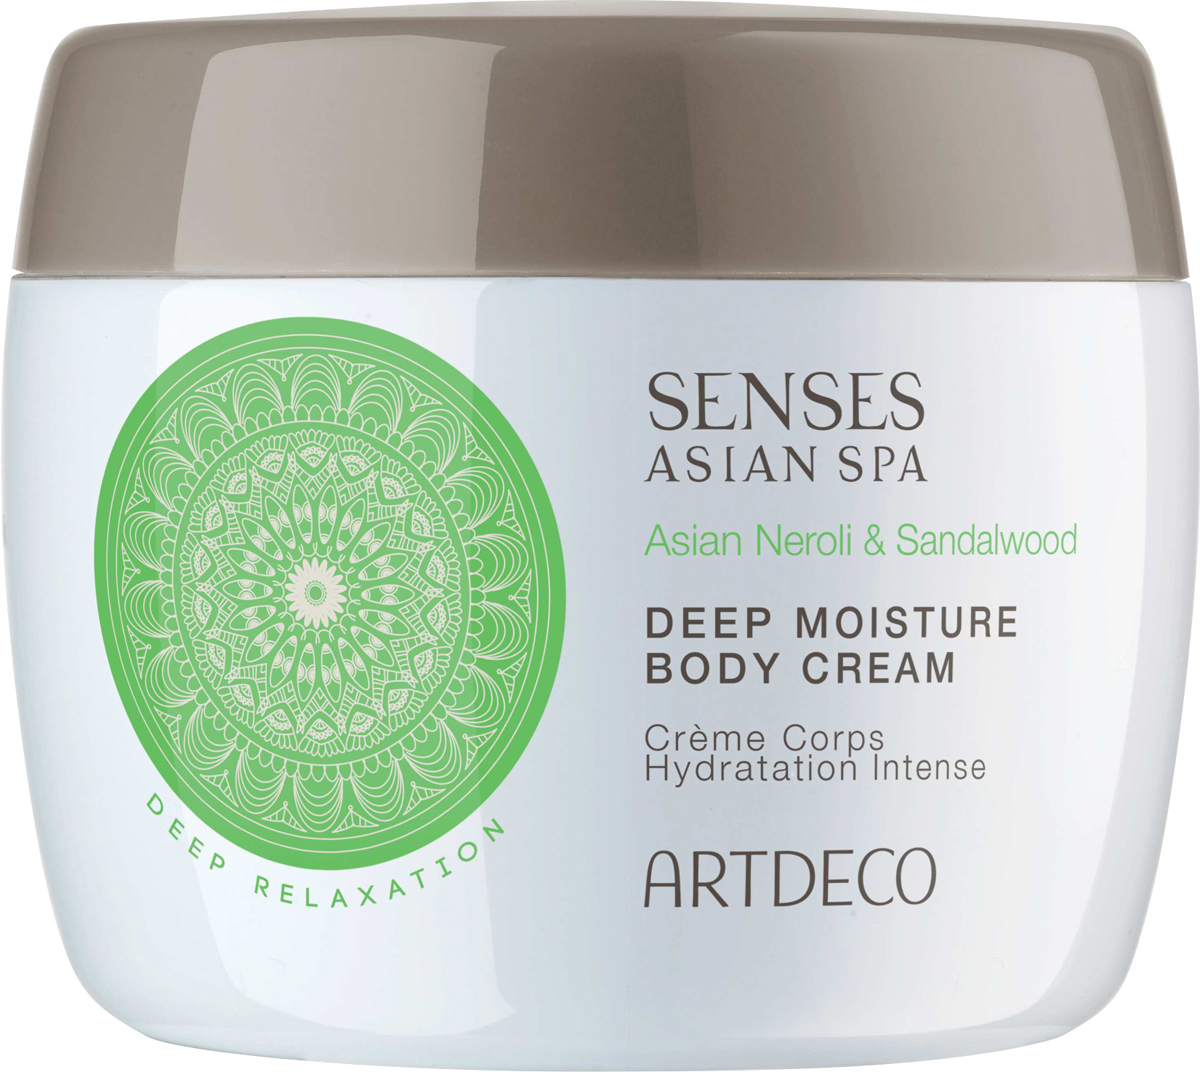 Artdeco крем для тела глубокоувлажняющий Deep moisture body cream, deep relaxation, 200 мл скраб artdeco deep exfoliating foot scrub deep relaxation